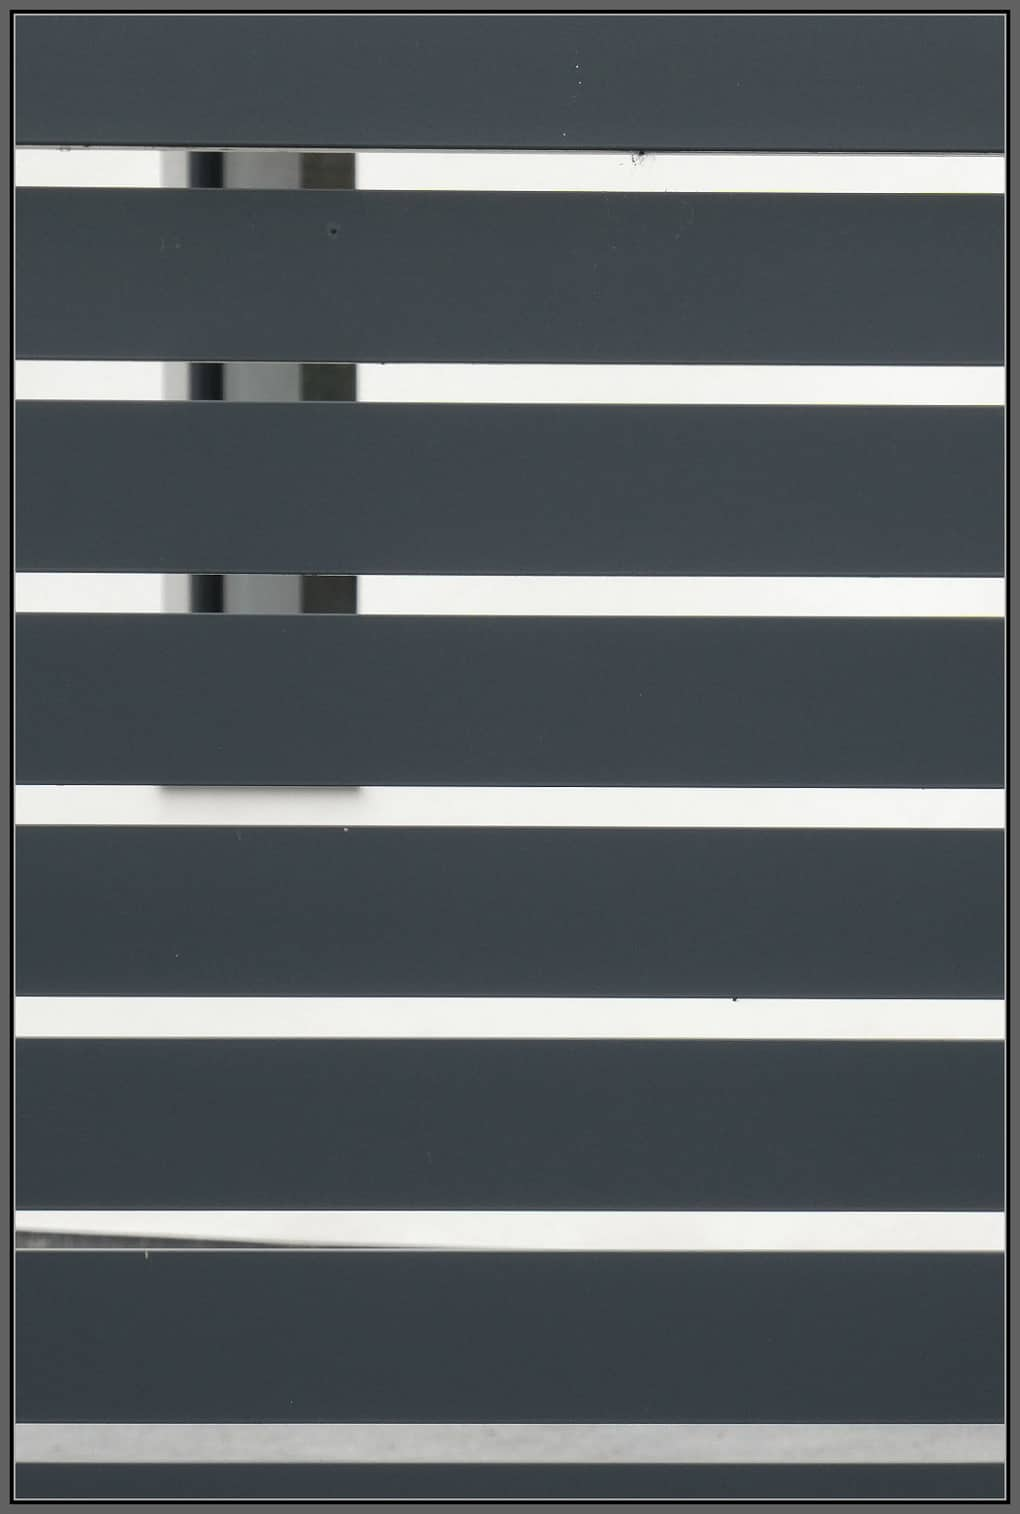 Grey bars against a white background - lockdown life